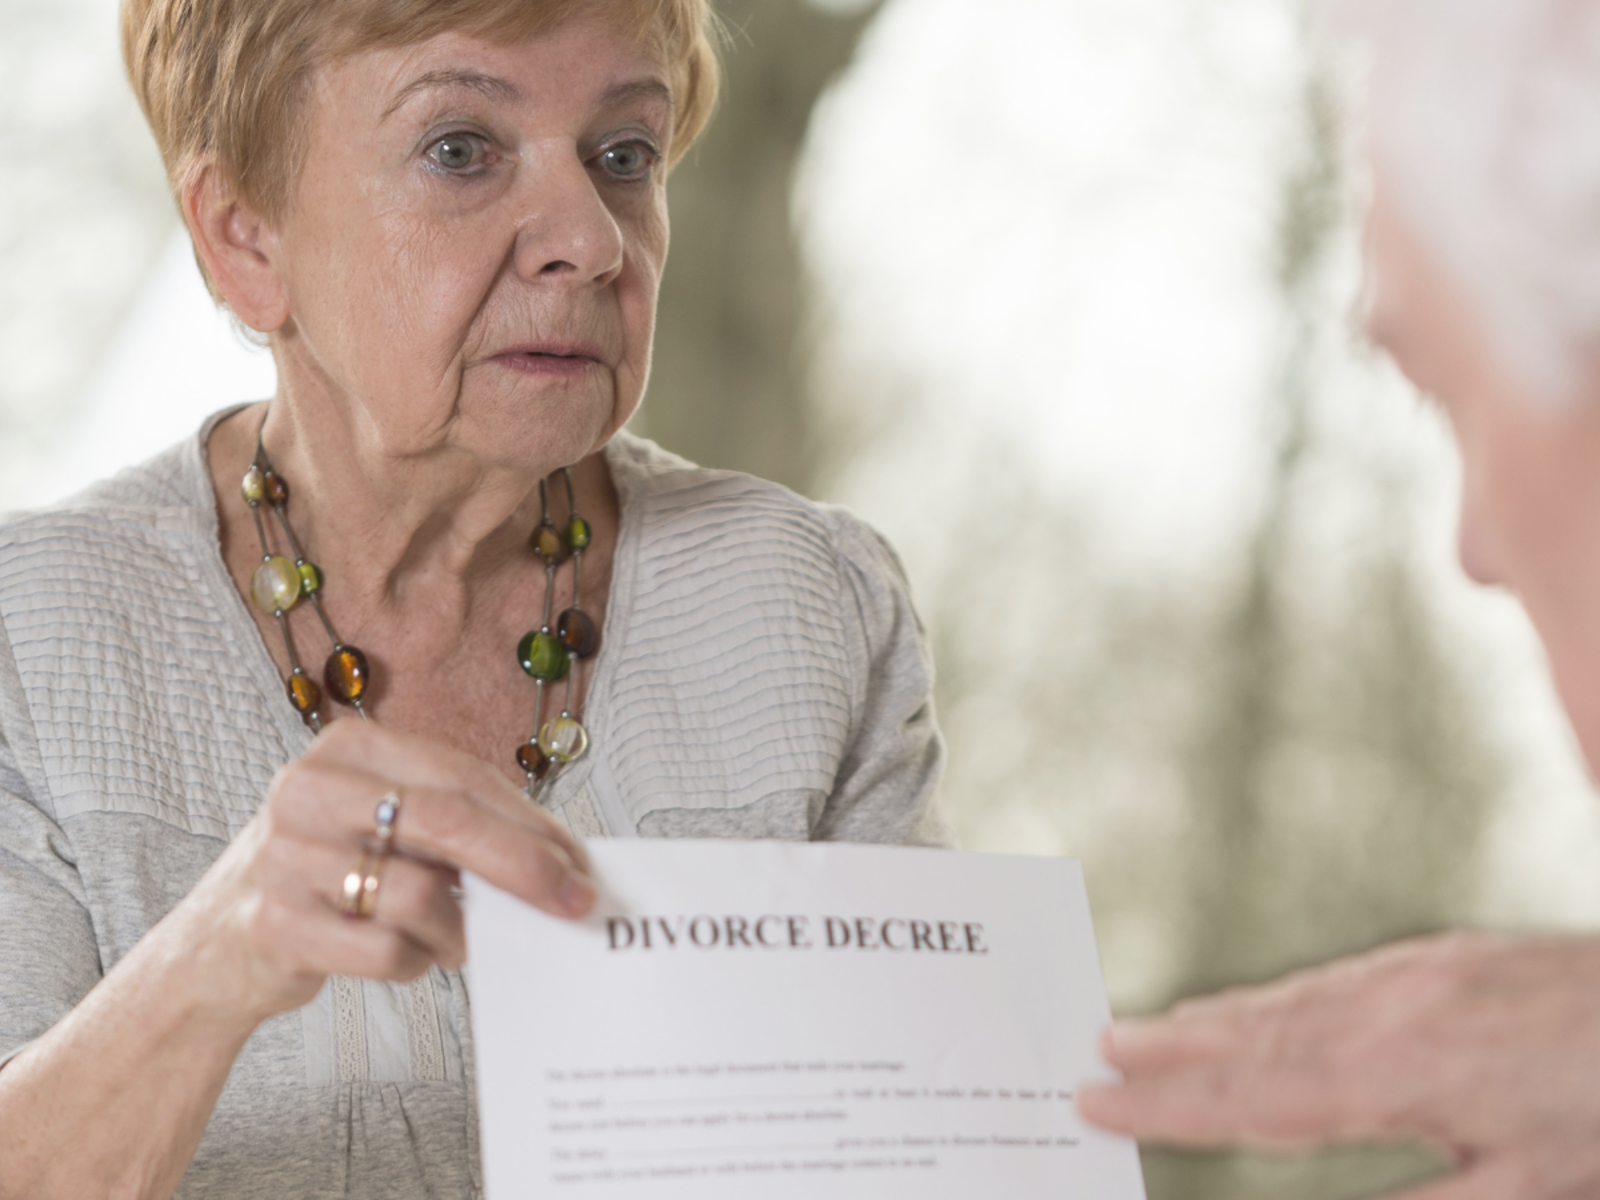 Why Is 50+ Divorce Increasing?